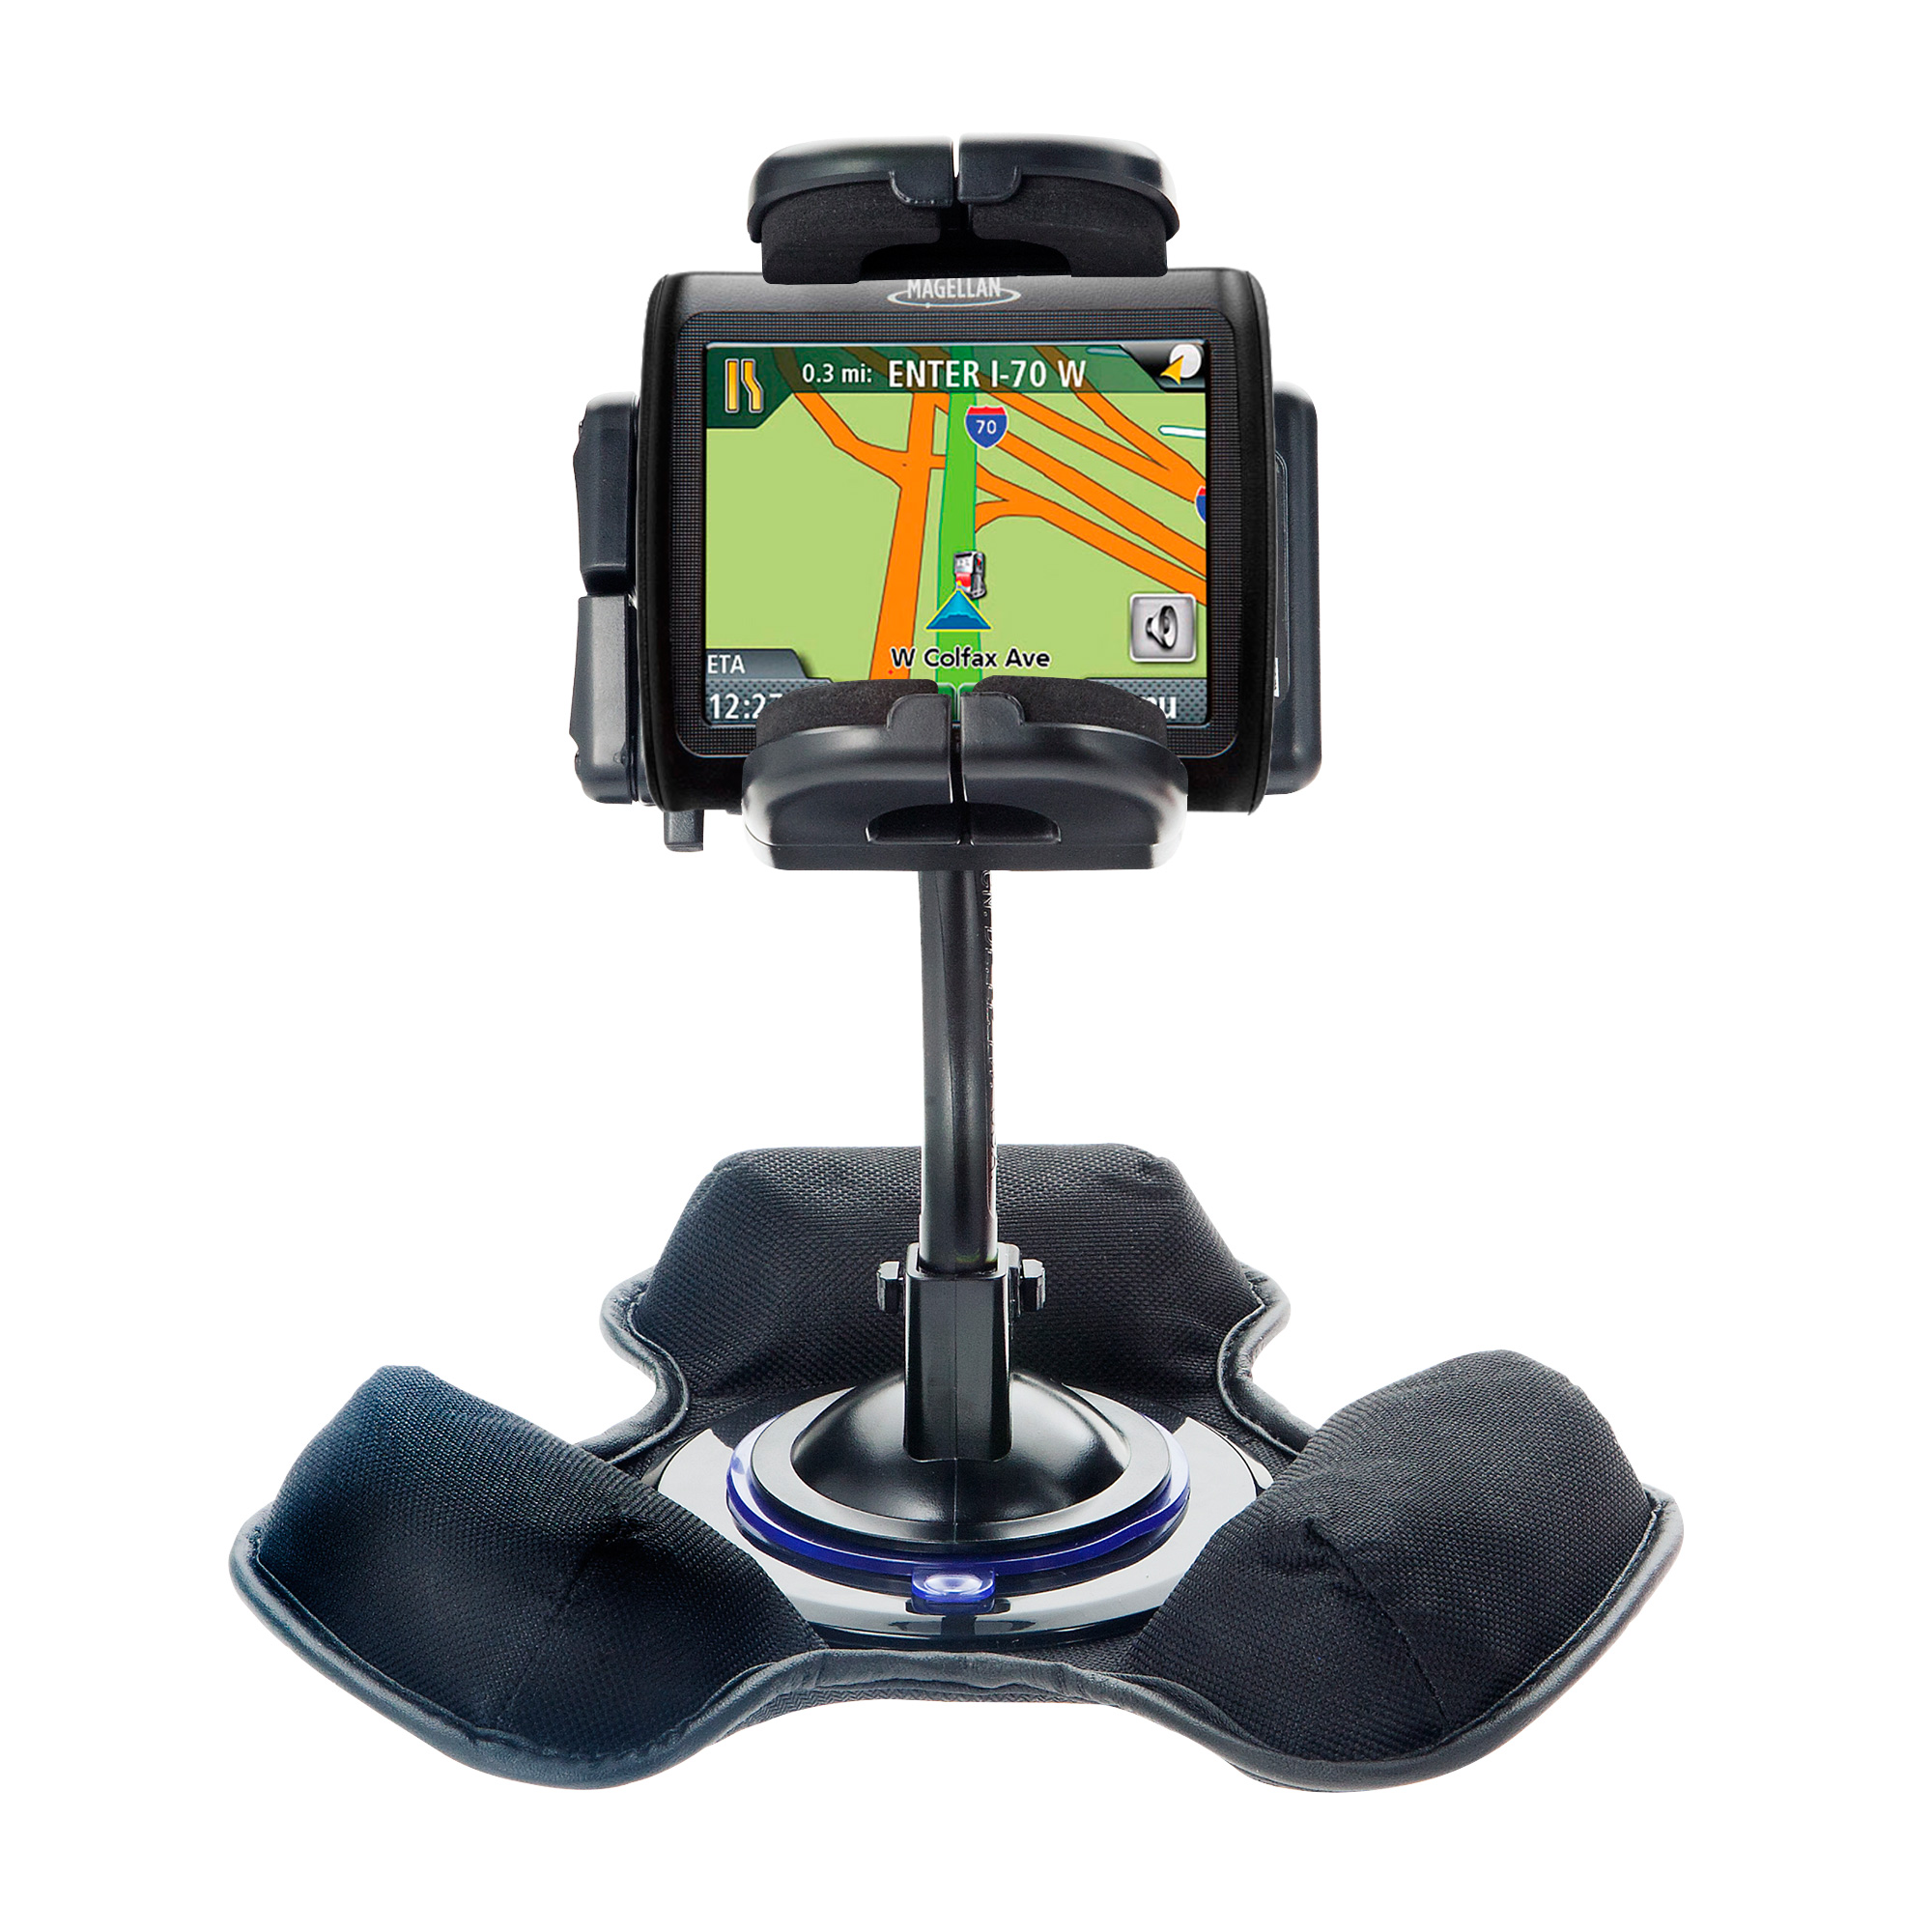 Car / Truck Vehicle Holder Mounting System for Magellan Roadmate 1210 Includes Unique Flexible Windshield Suction and Universal Dashboard Mount Options